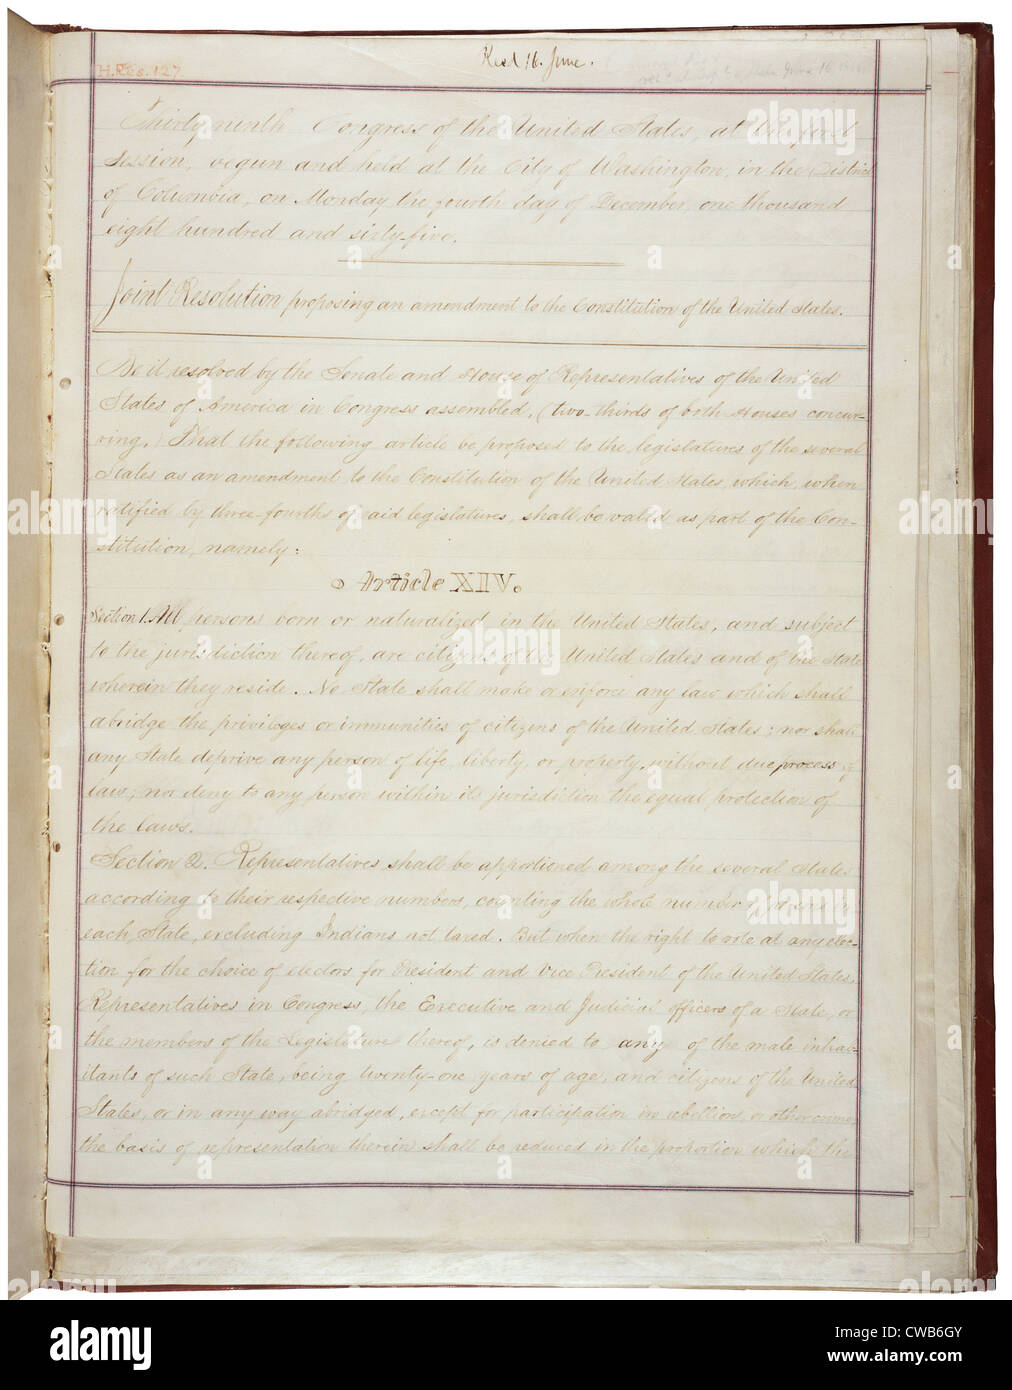 14th Amendment to the U.S. Constitution: Civil Rights (1868)Passed by Congress June 13, 1866, and ratified July - Stock Image